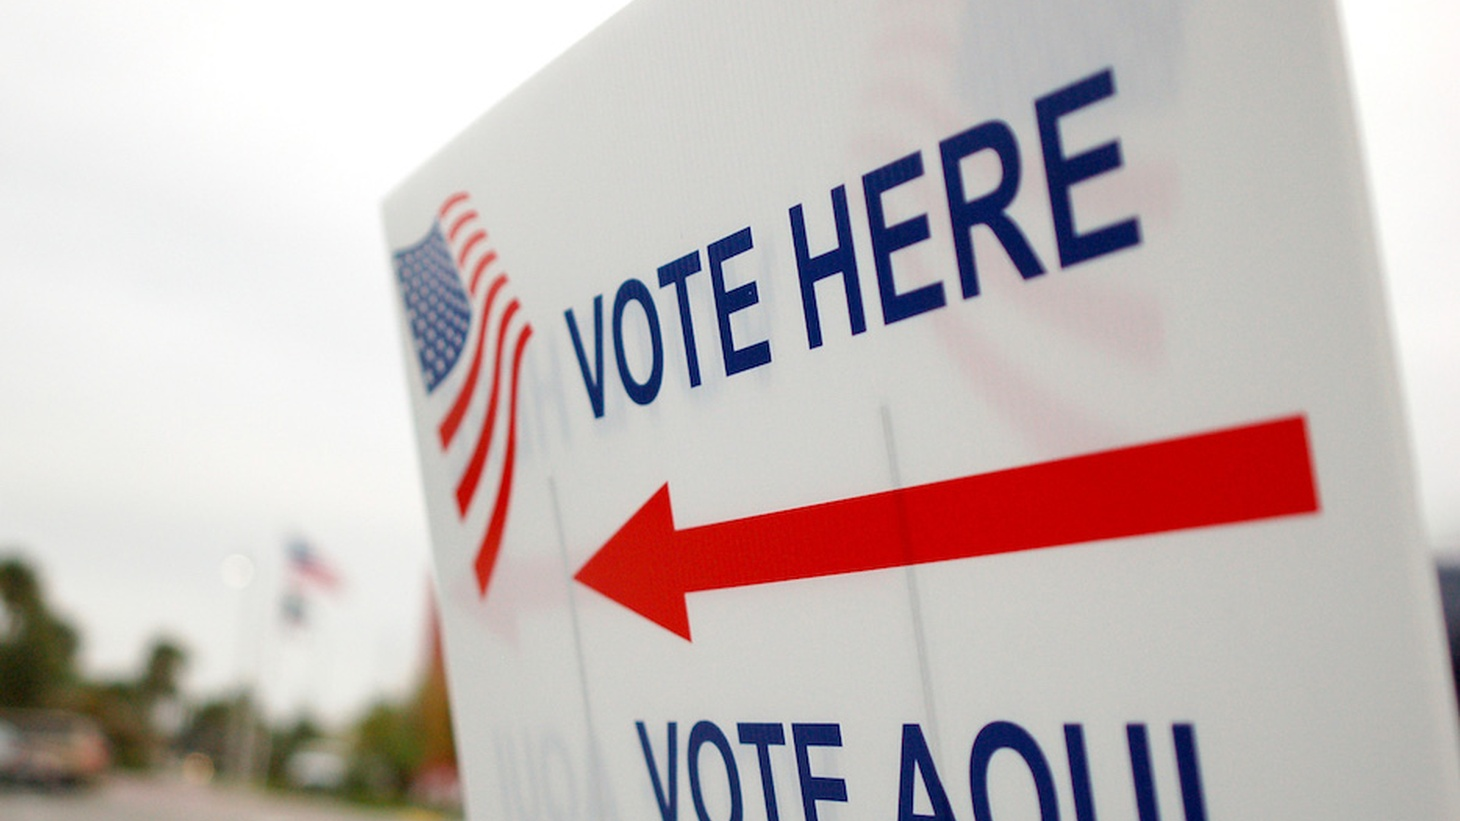 Voting is fundamental to a democratic society, but millions of California residents can't cast ballots because they aren't citizens. Joe Mathews says the state would benefit from their participation in electoral politics.